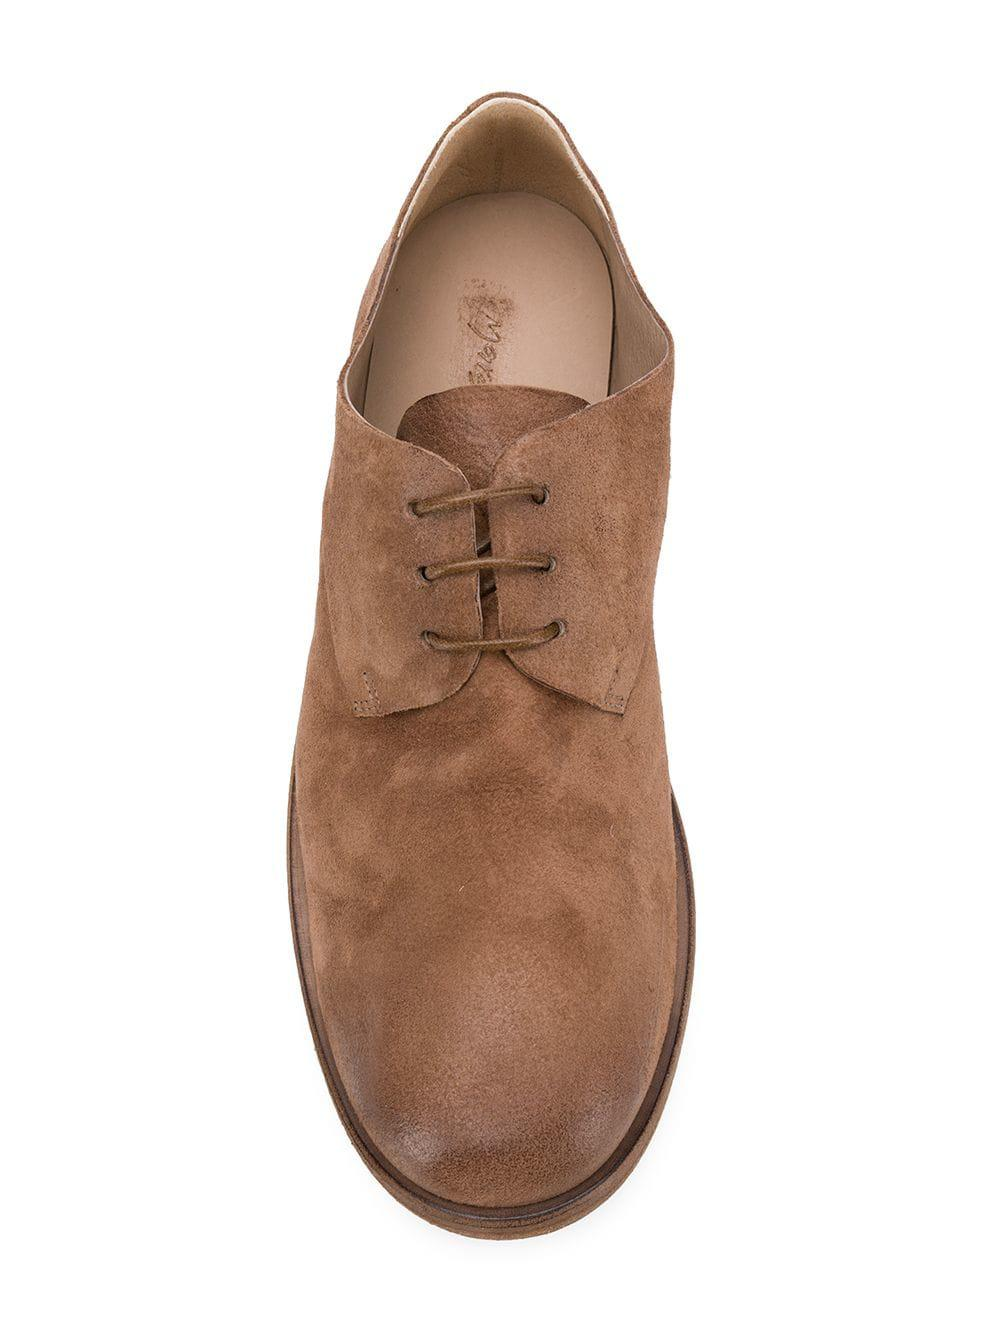 Marsèll Brown Lyst Derby In Up For Men Shoes Lace uFK1c53JTl